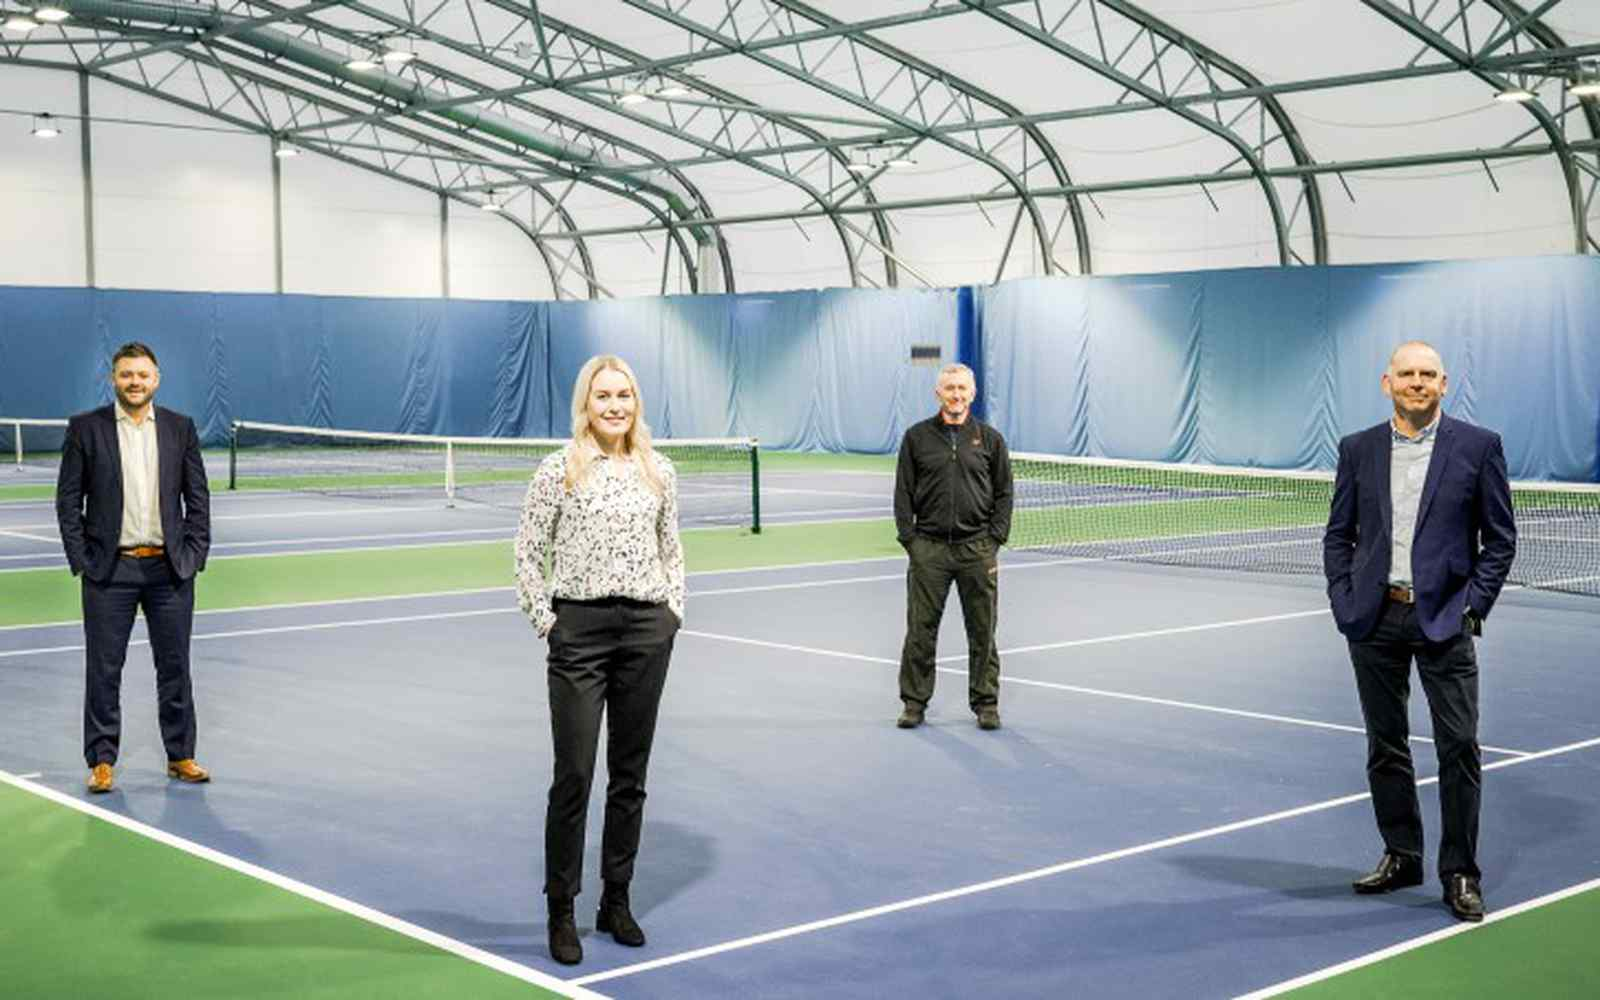 Four smartly dressed people on an indoor tennis court